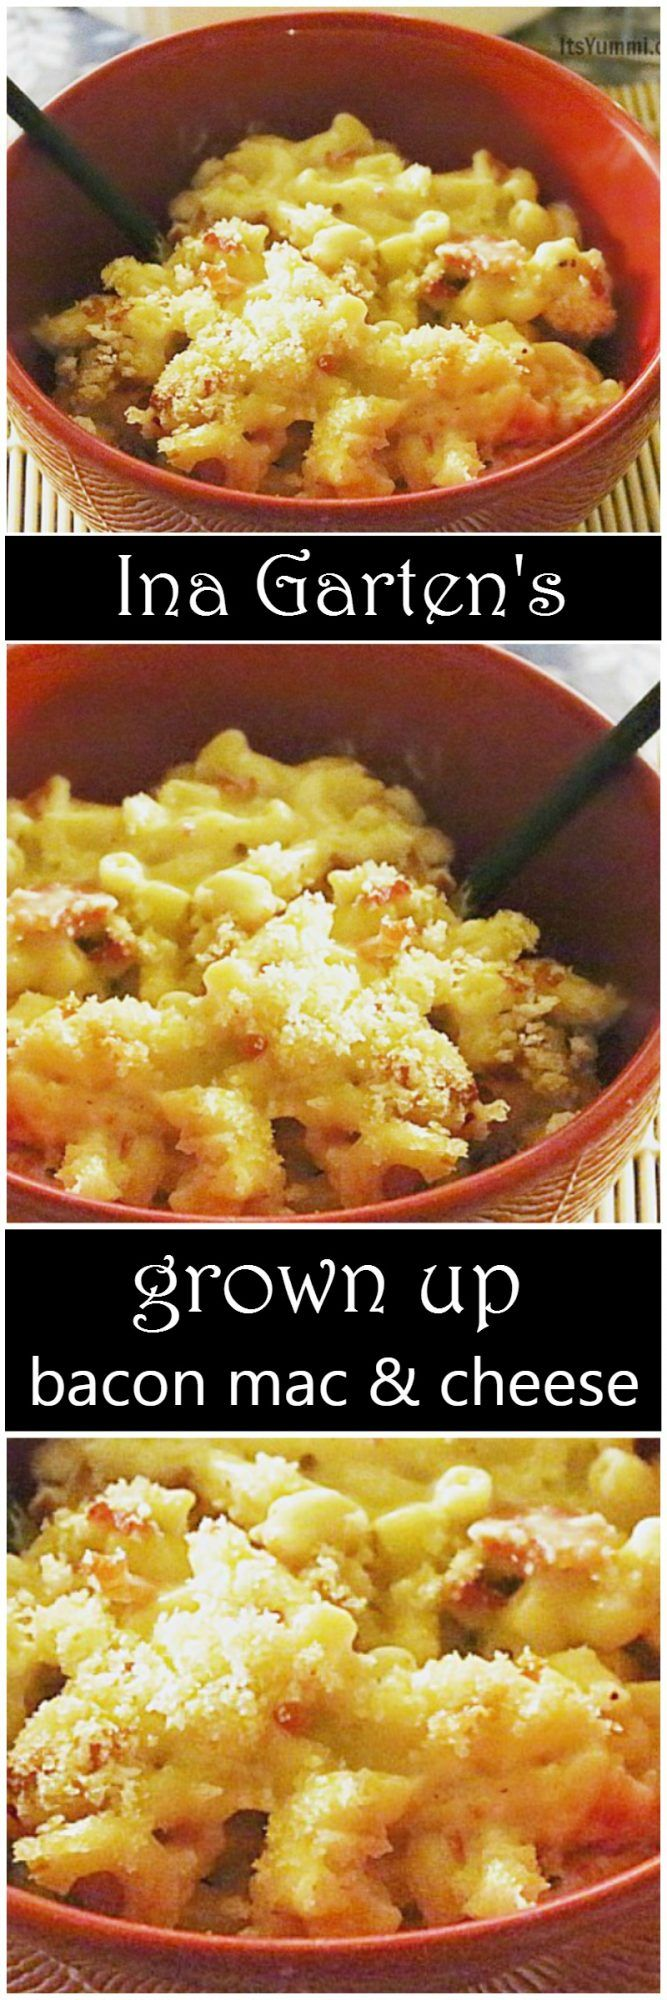 Ina Garten's Grown Up Bacon Mac and Cheese Recipe - This is pure comfort food with a cheese sauce made from FOUR cheeses! Get the recipe from @itsyummi